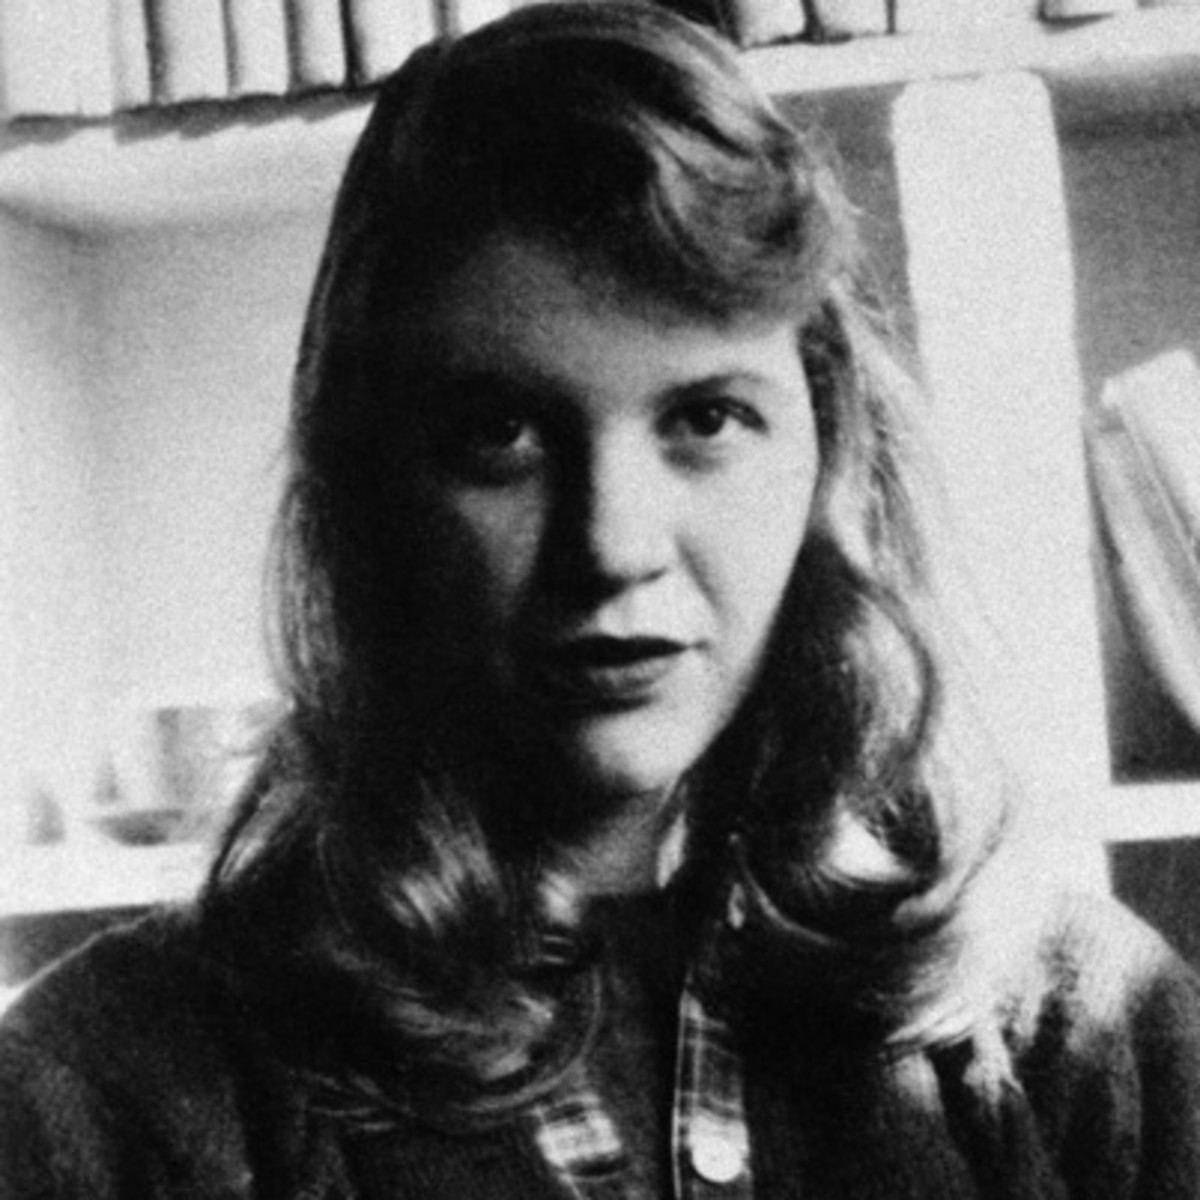 sylvia plath academic author editor poet com